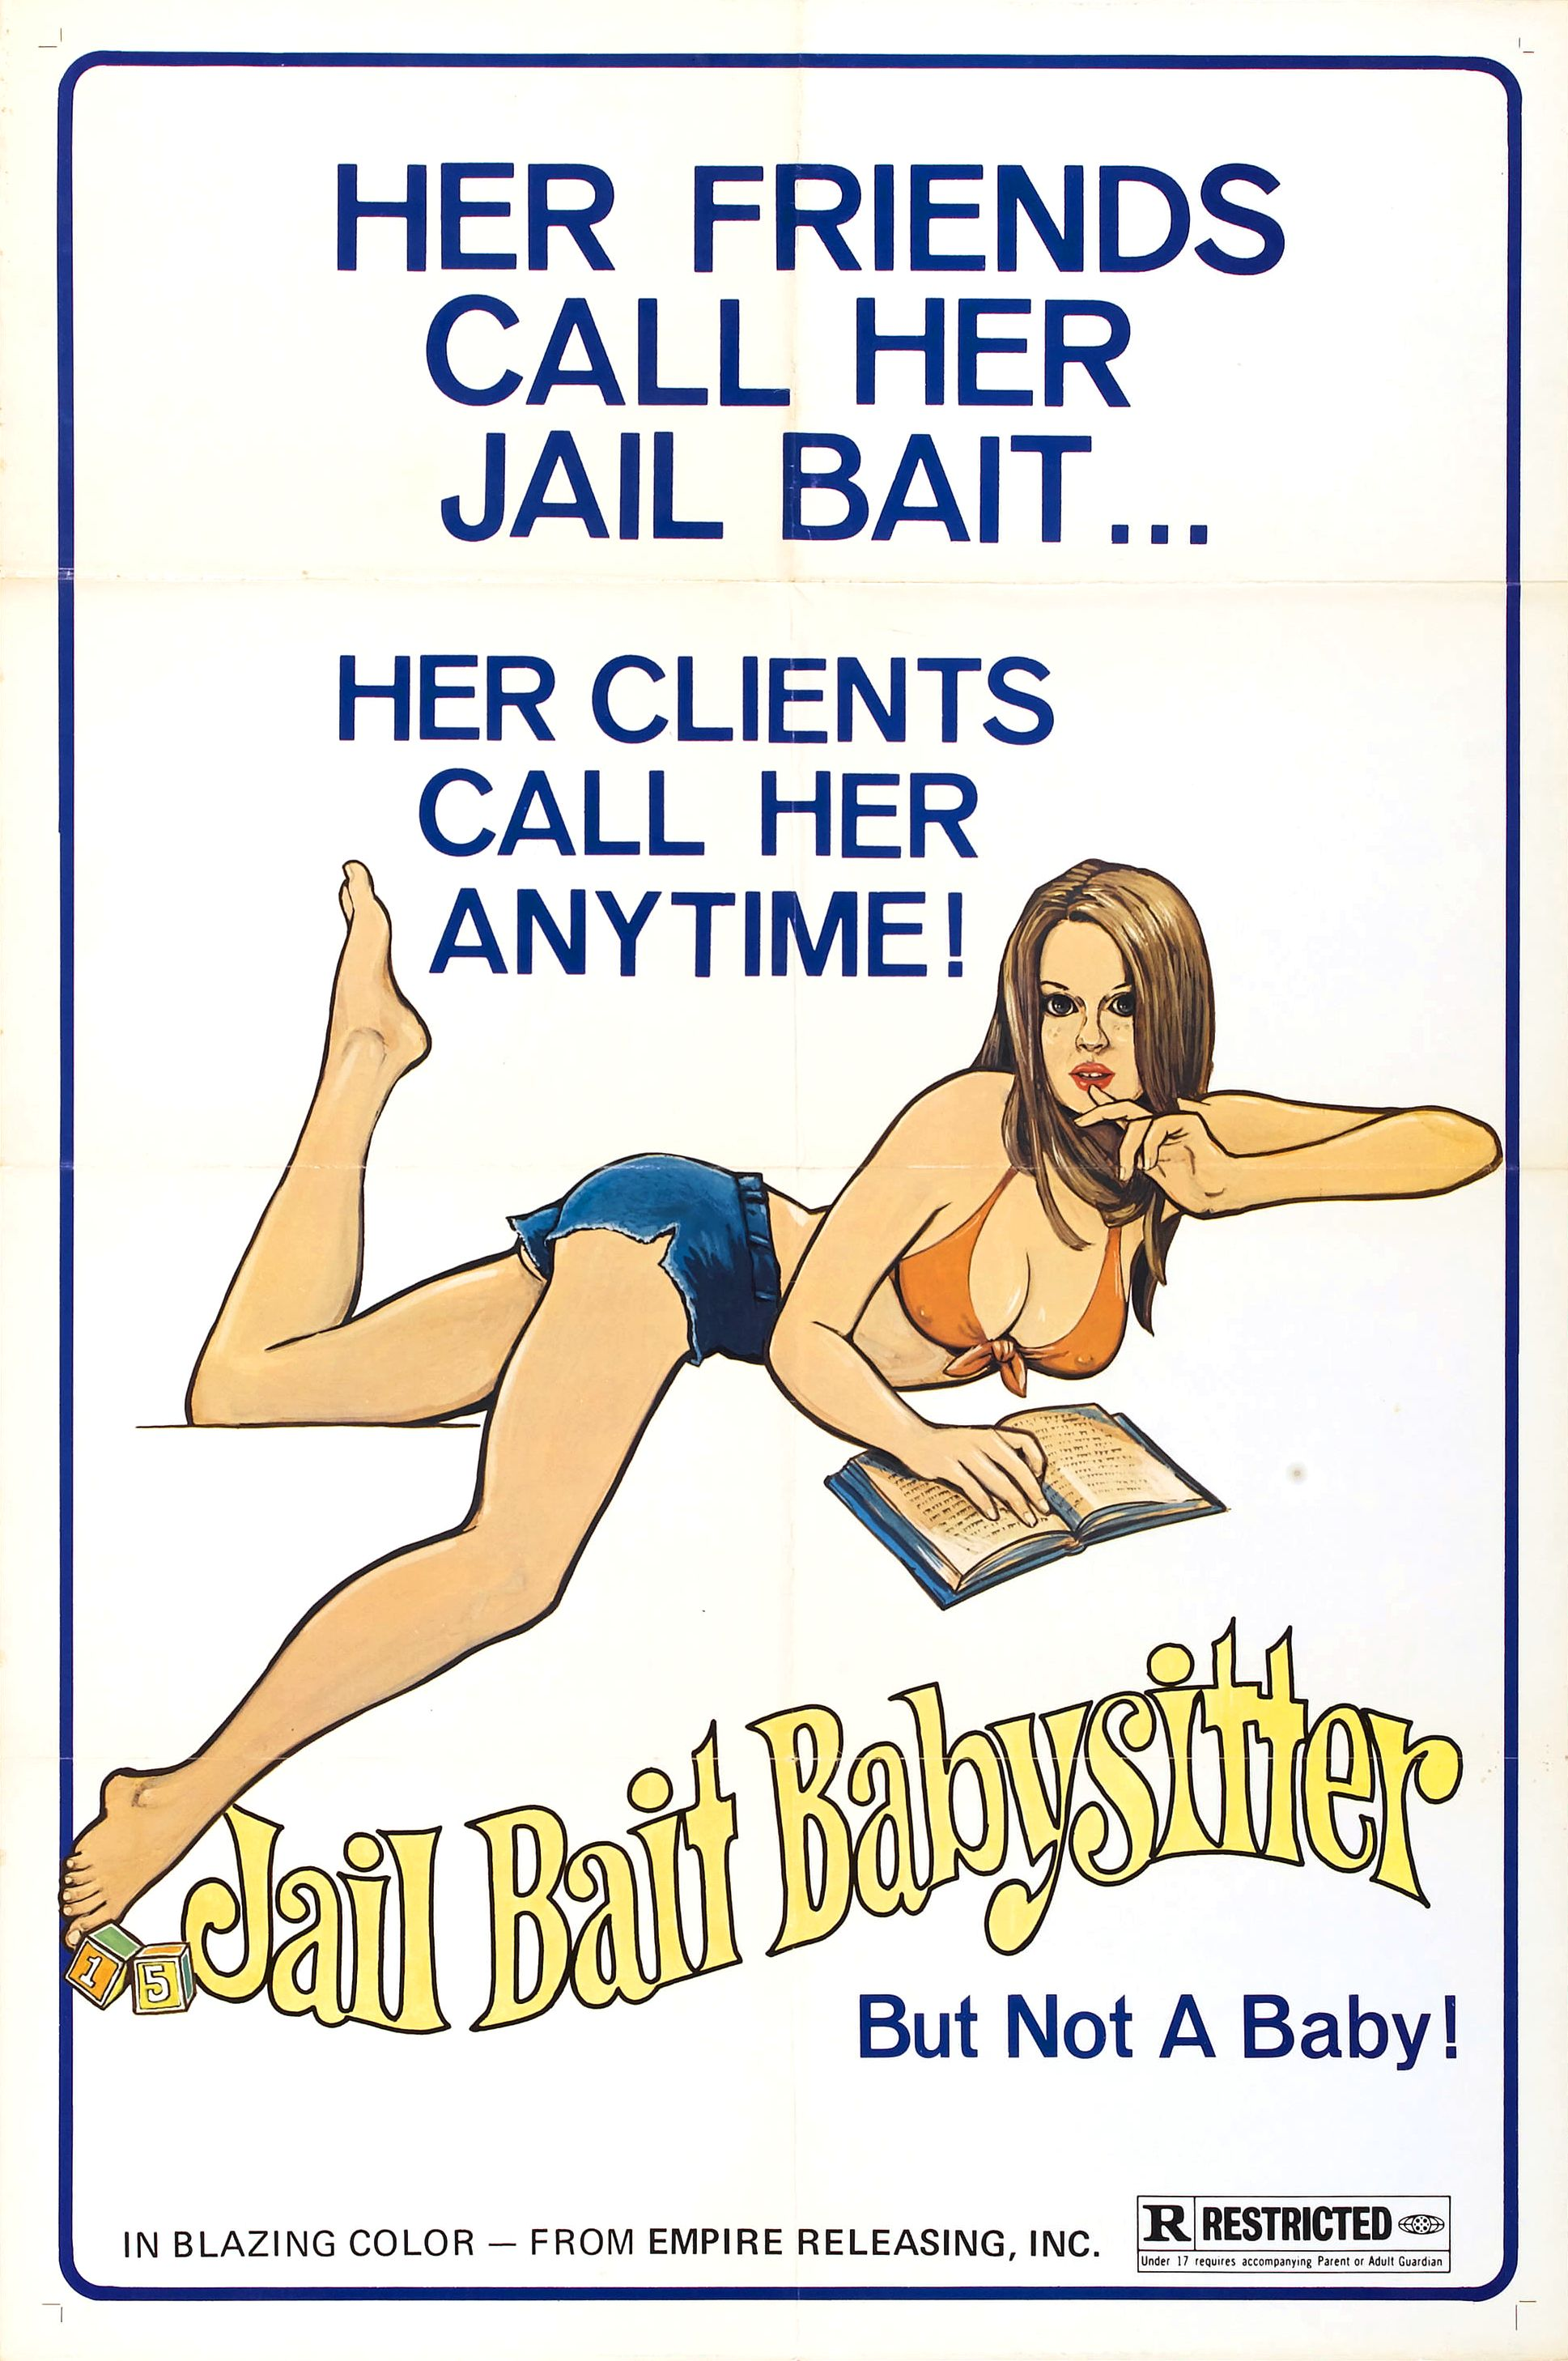 grindhouse classics jailbait babysitter trash film guru can